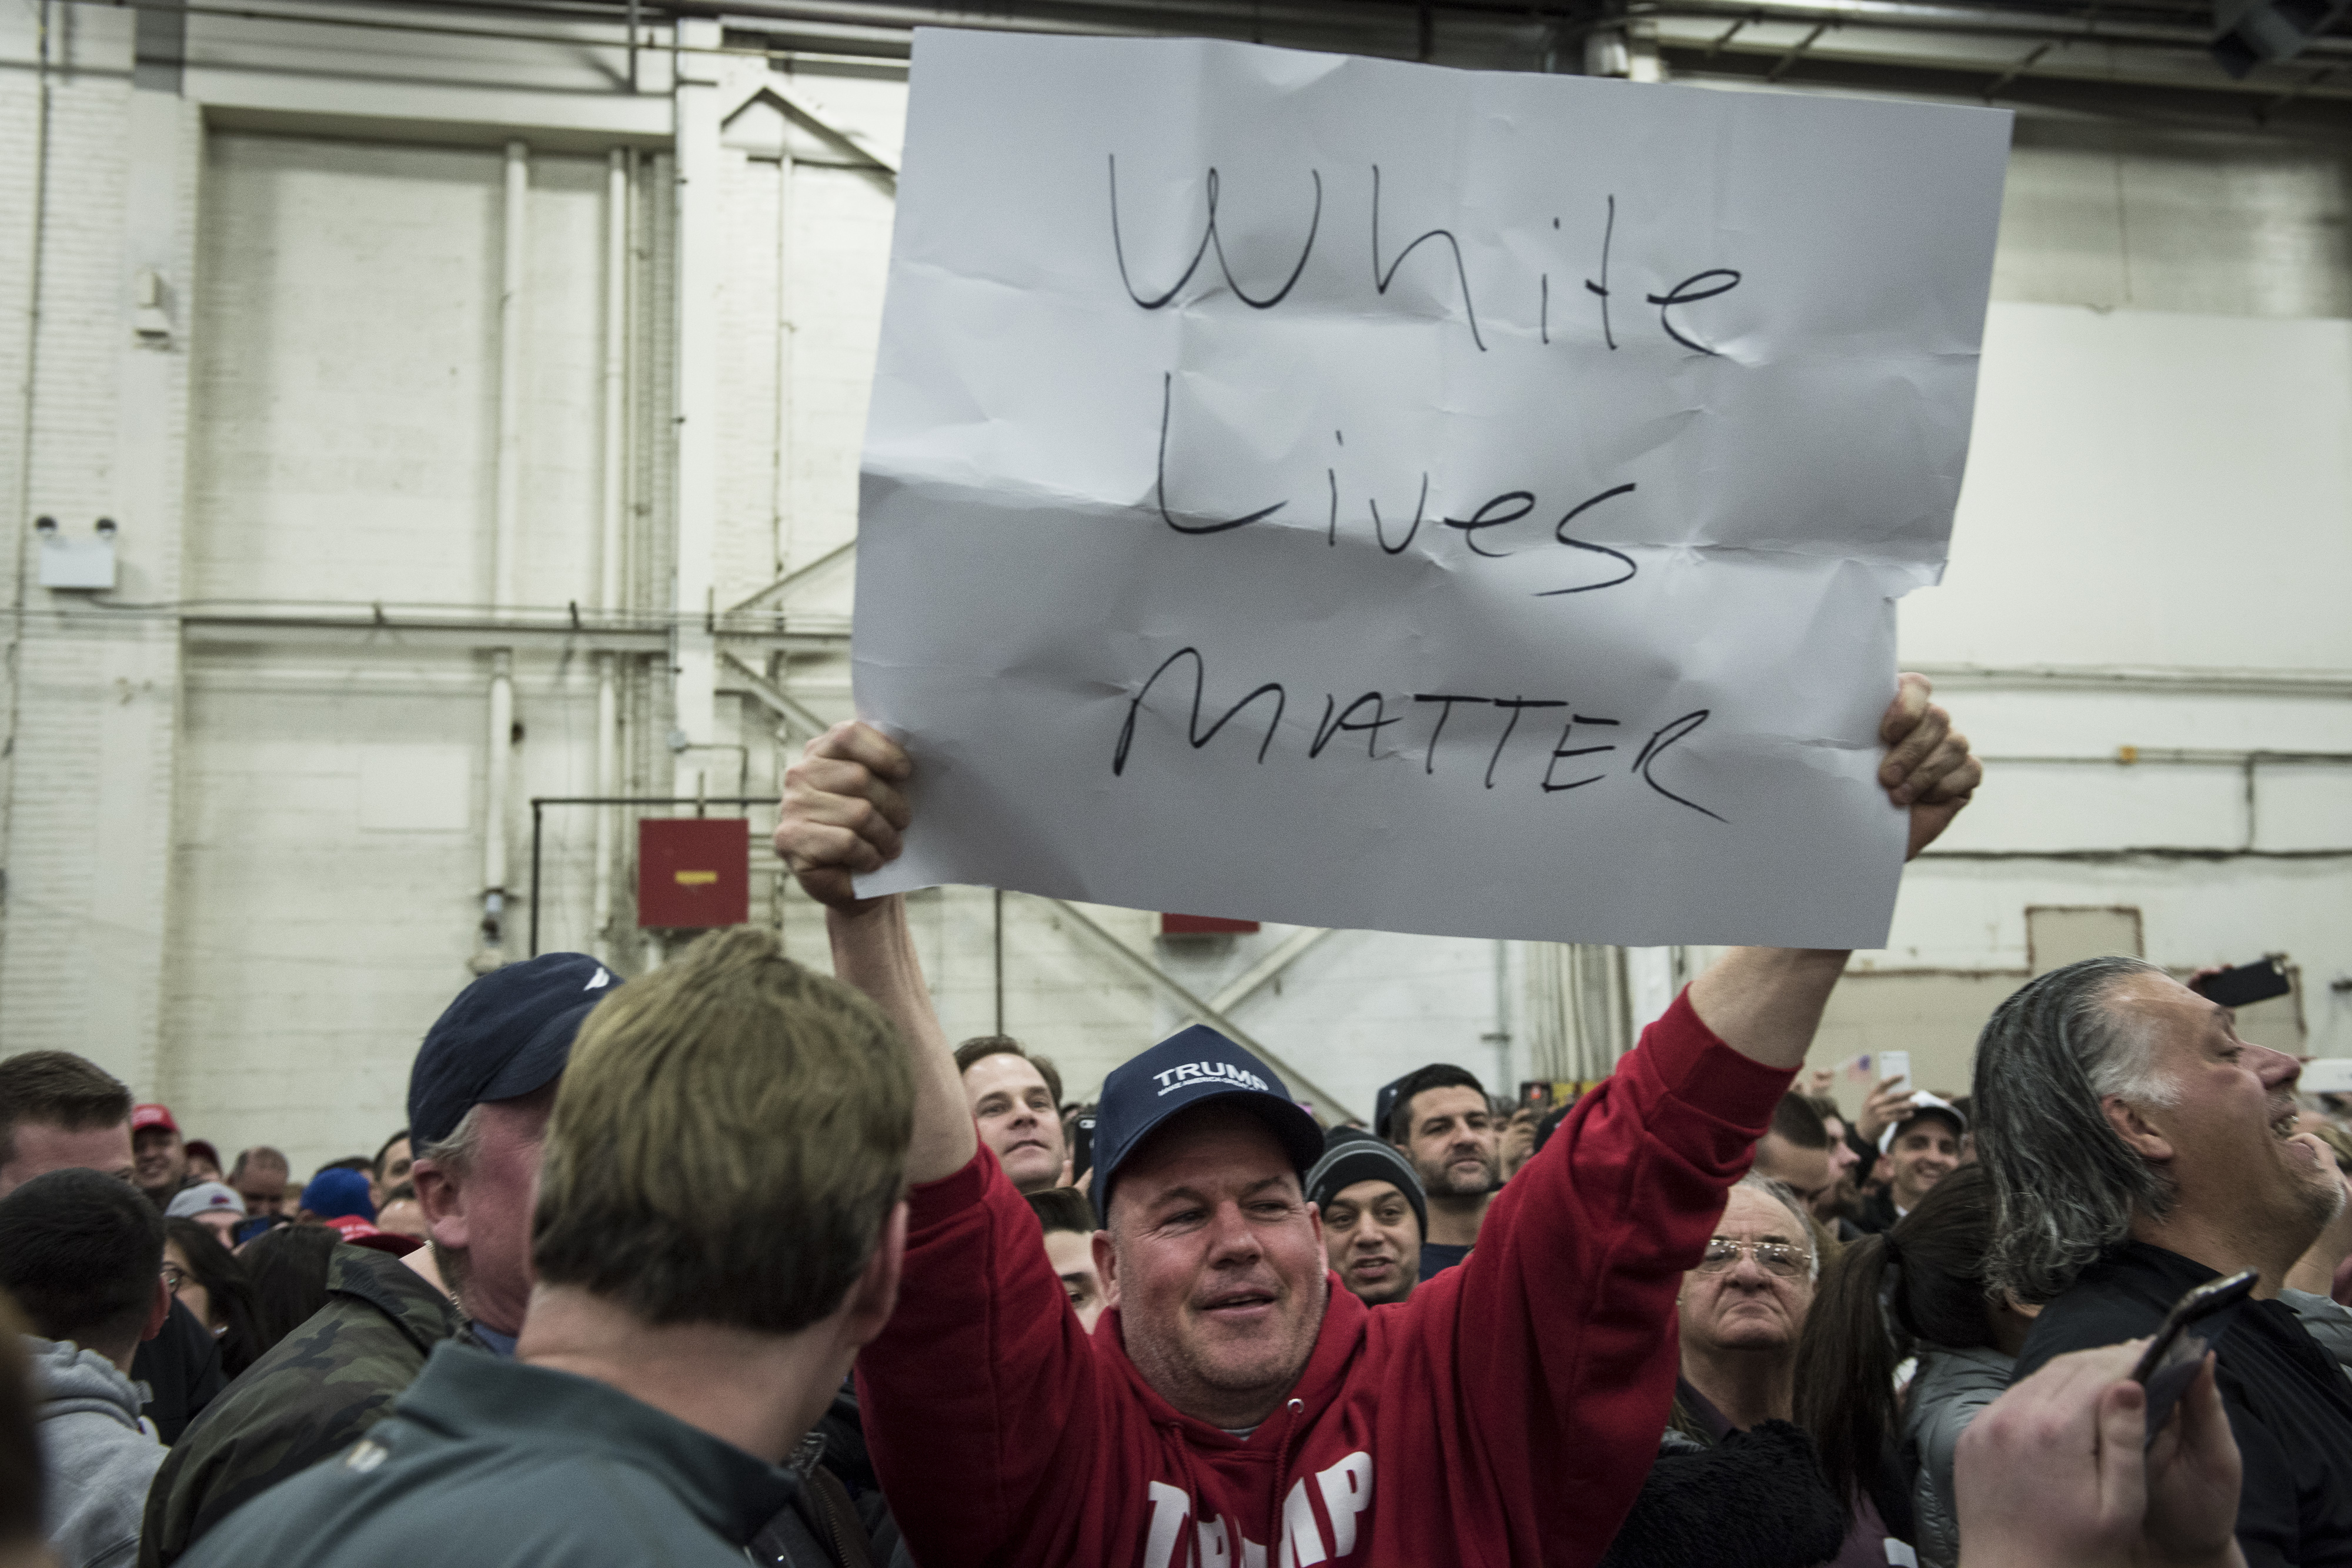 A Trump supporter holds up a  White Lives Matter  sign during a rally for Republican Presidential Candidate Donald Trump on April 6, 2016 in Bethpage, New York. The rally comes ahead of the April 15 New York primary.